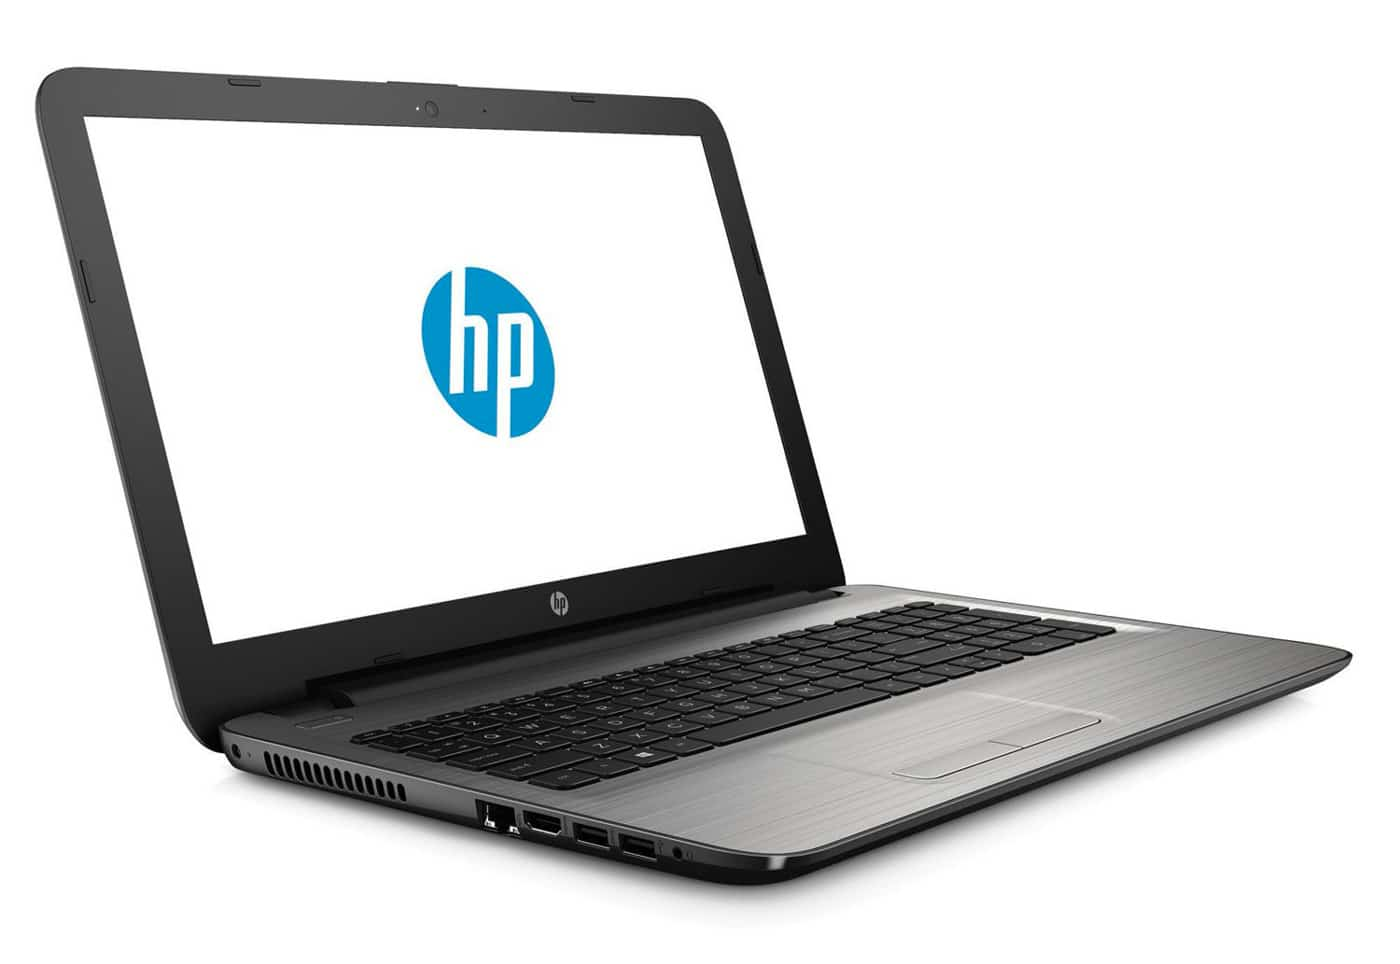 HP 15-ay106nf à 799€, PC portable 15 pouces Full mat Kaby Lake i7 R7 1To